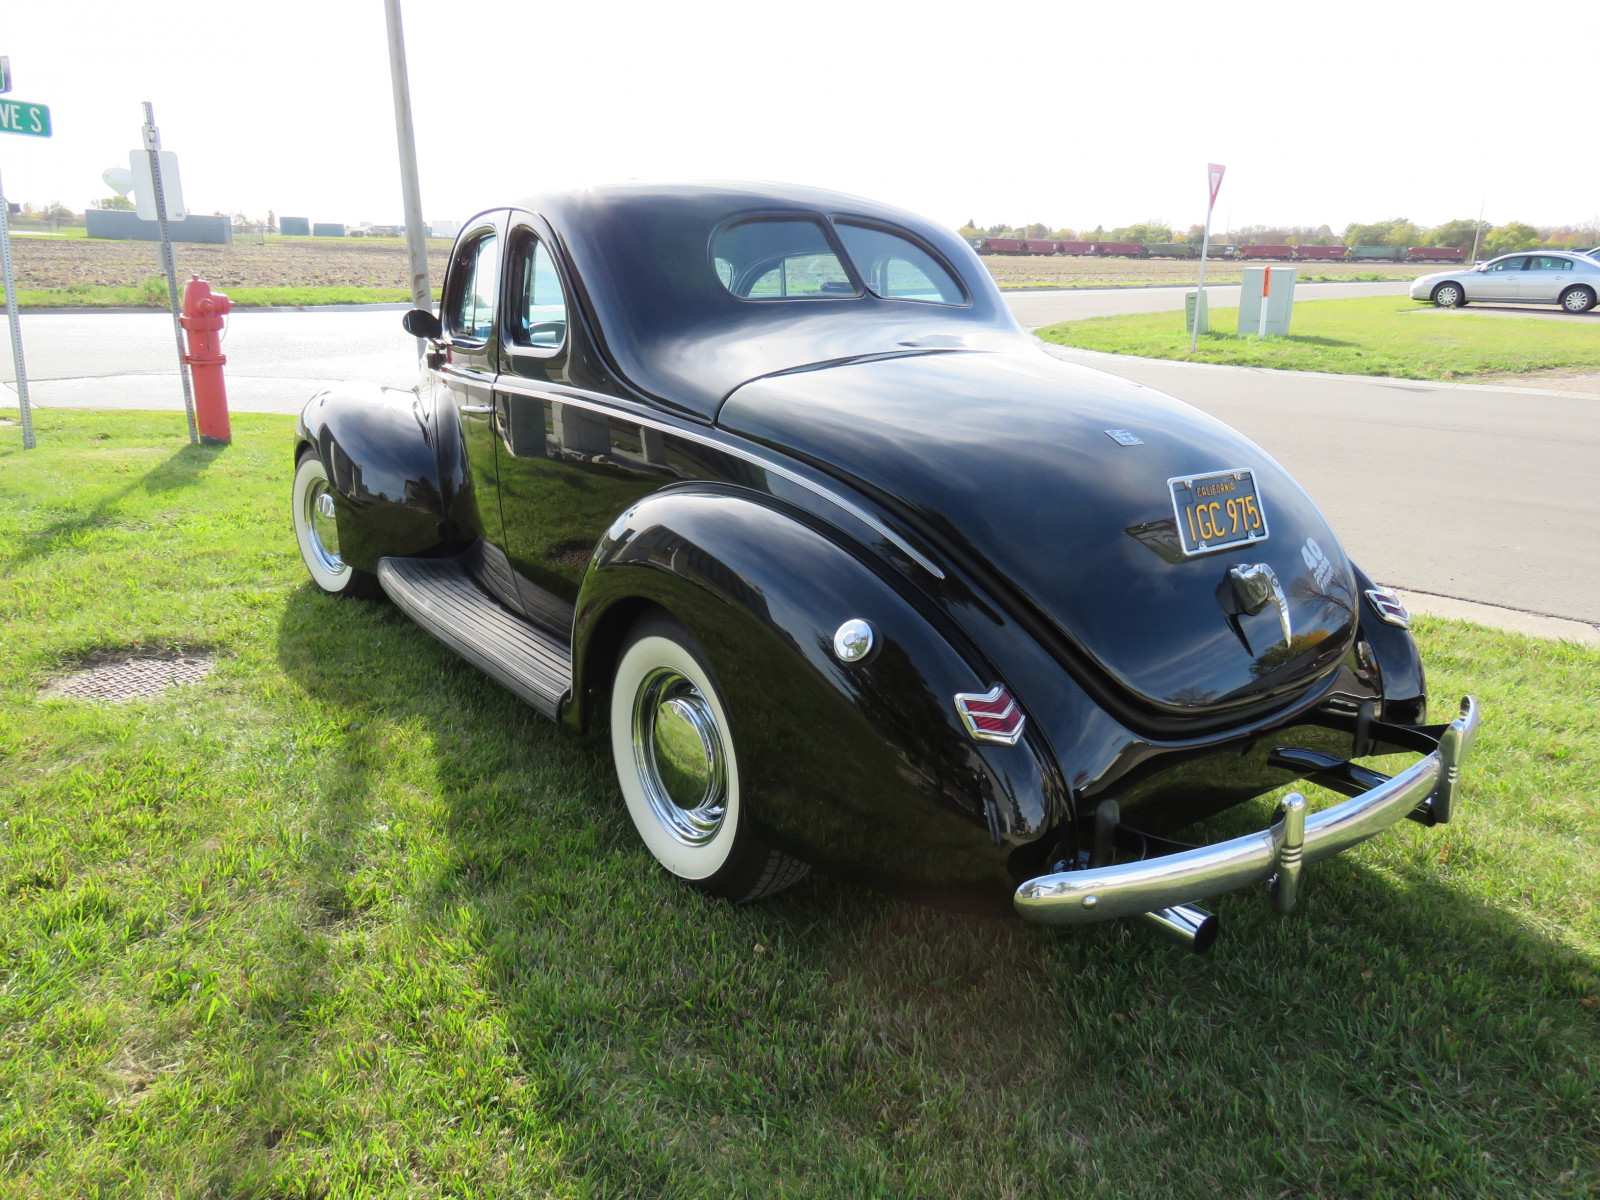 Beautiful 1940 Ford Coupe - Image 6